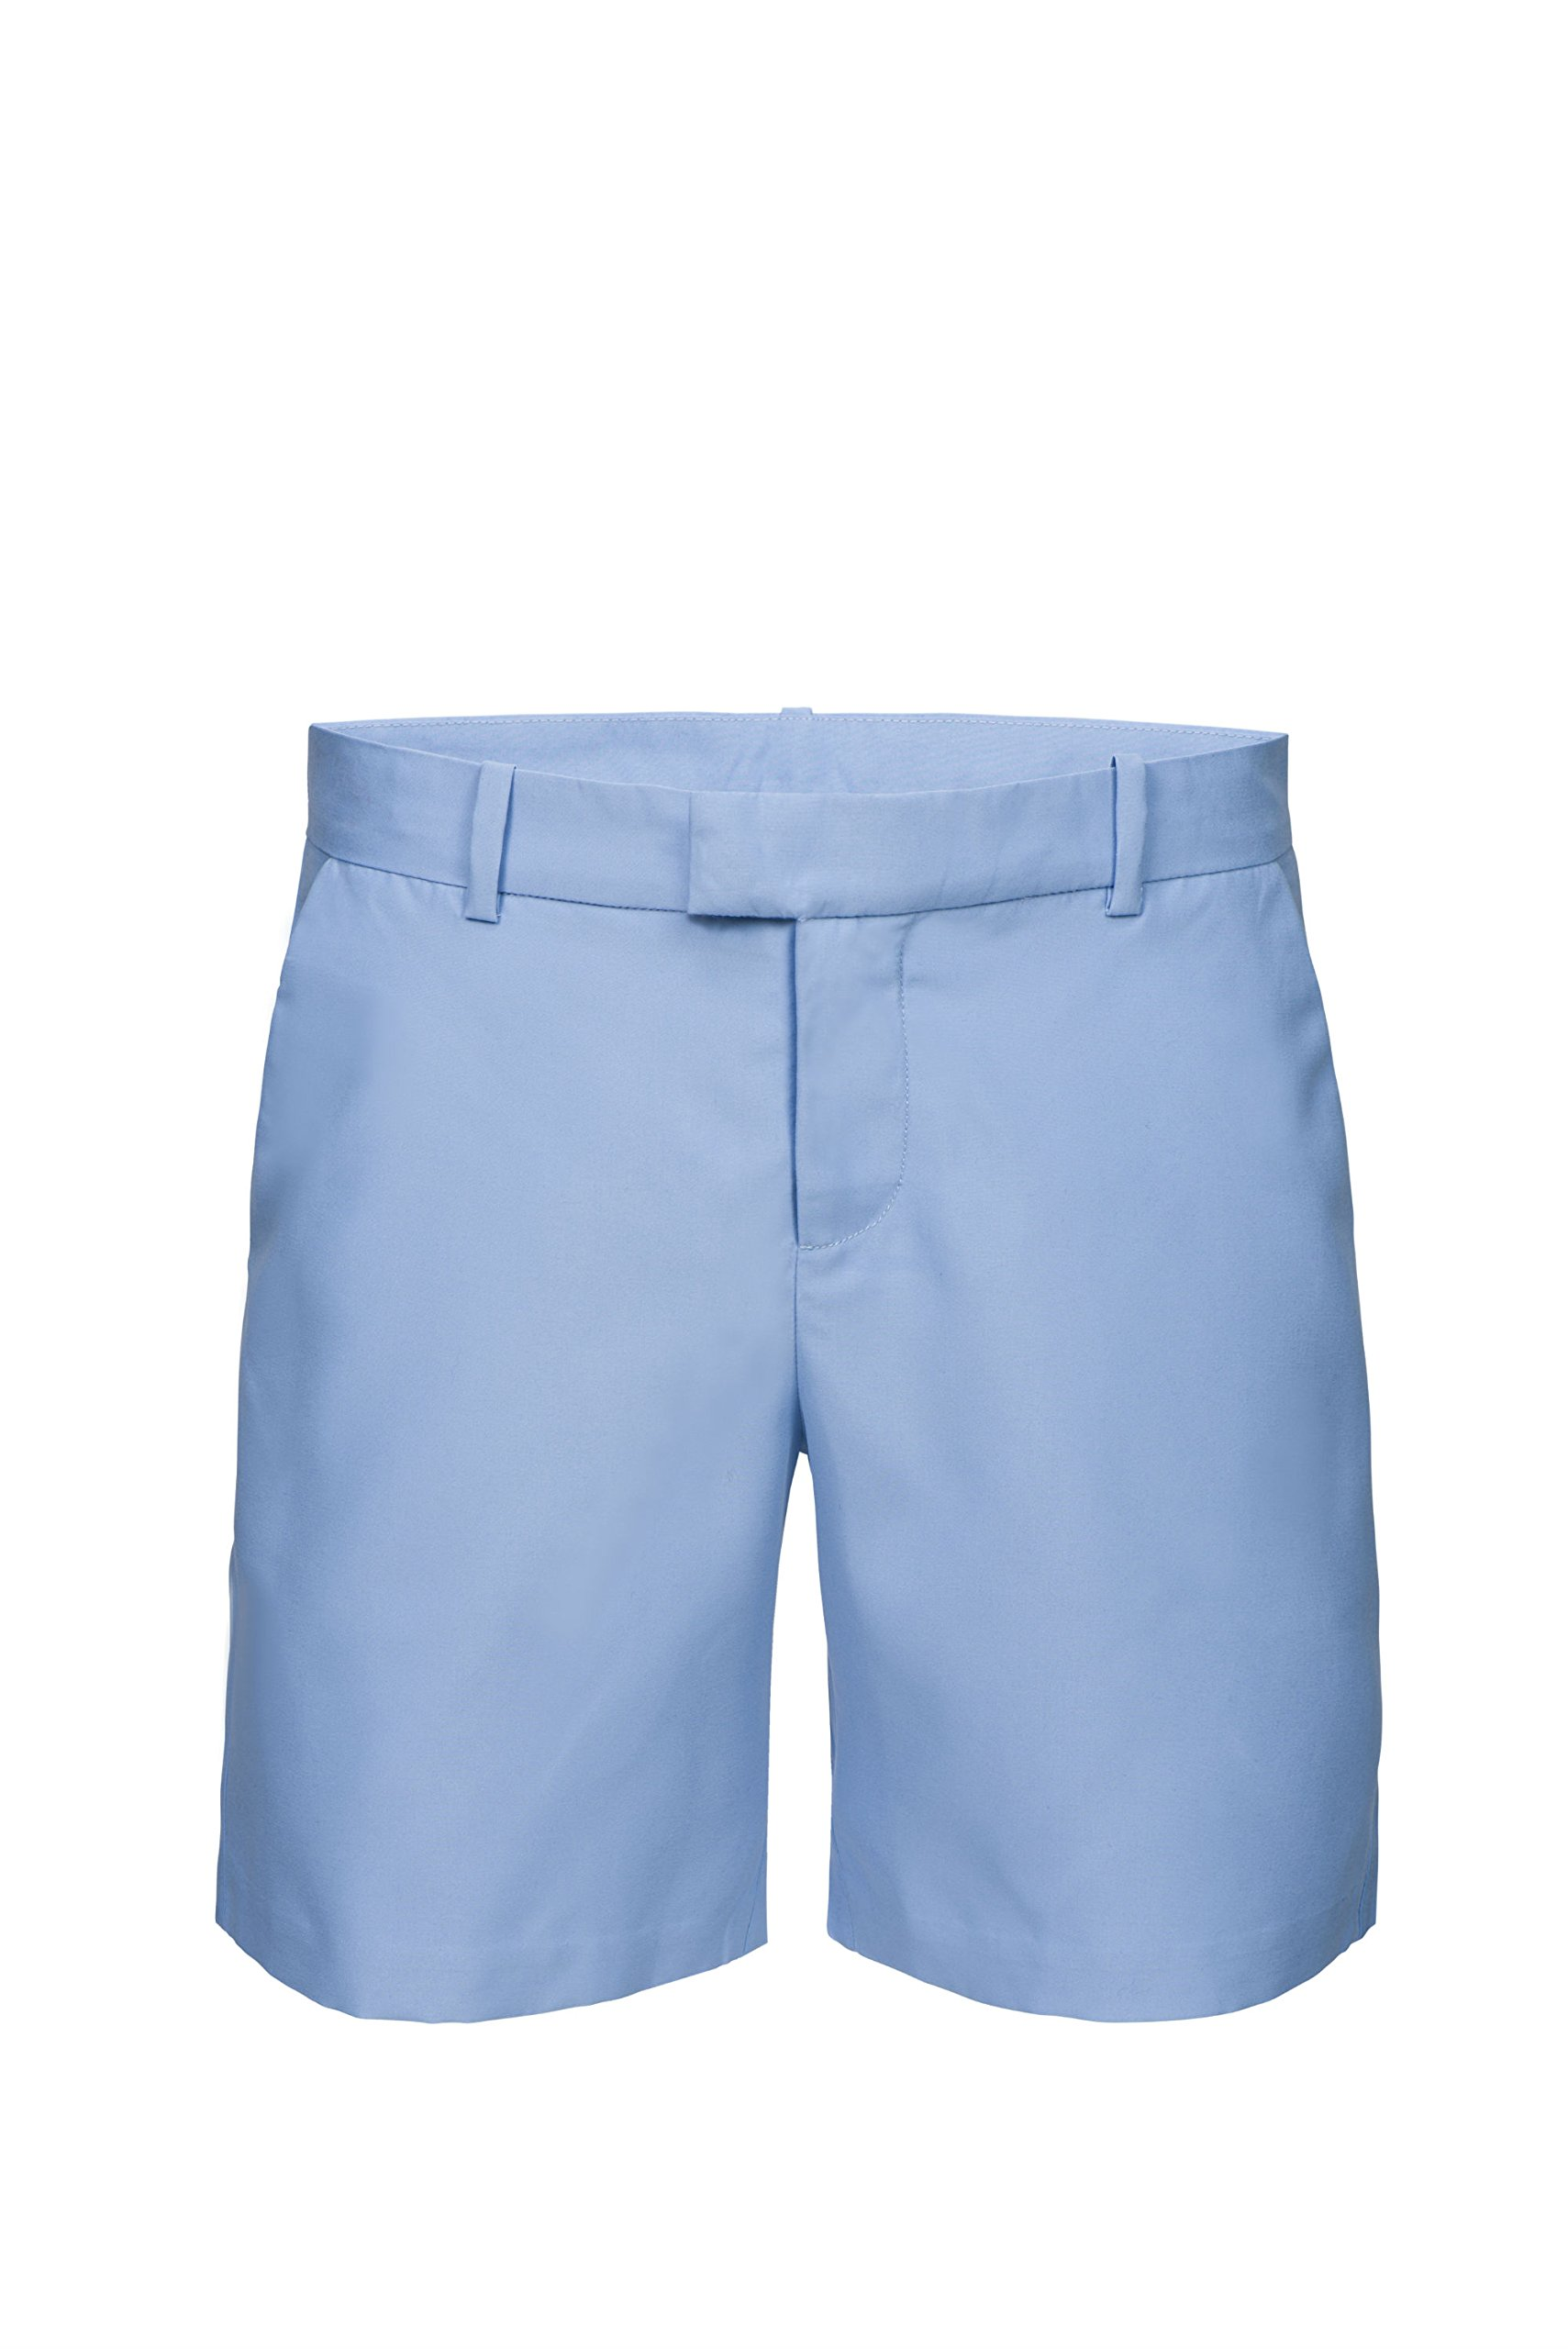 SWIMS Men's Slim Fit Flat Front Paloma Chino Hybrid Shorts in Sky Blue - Size L